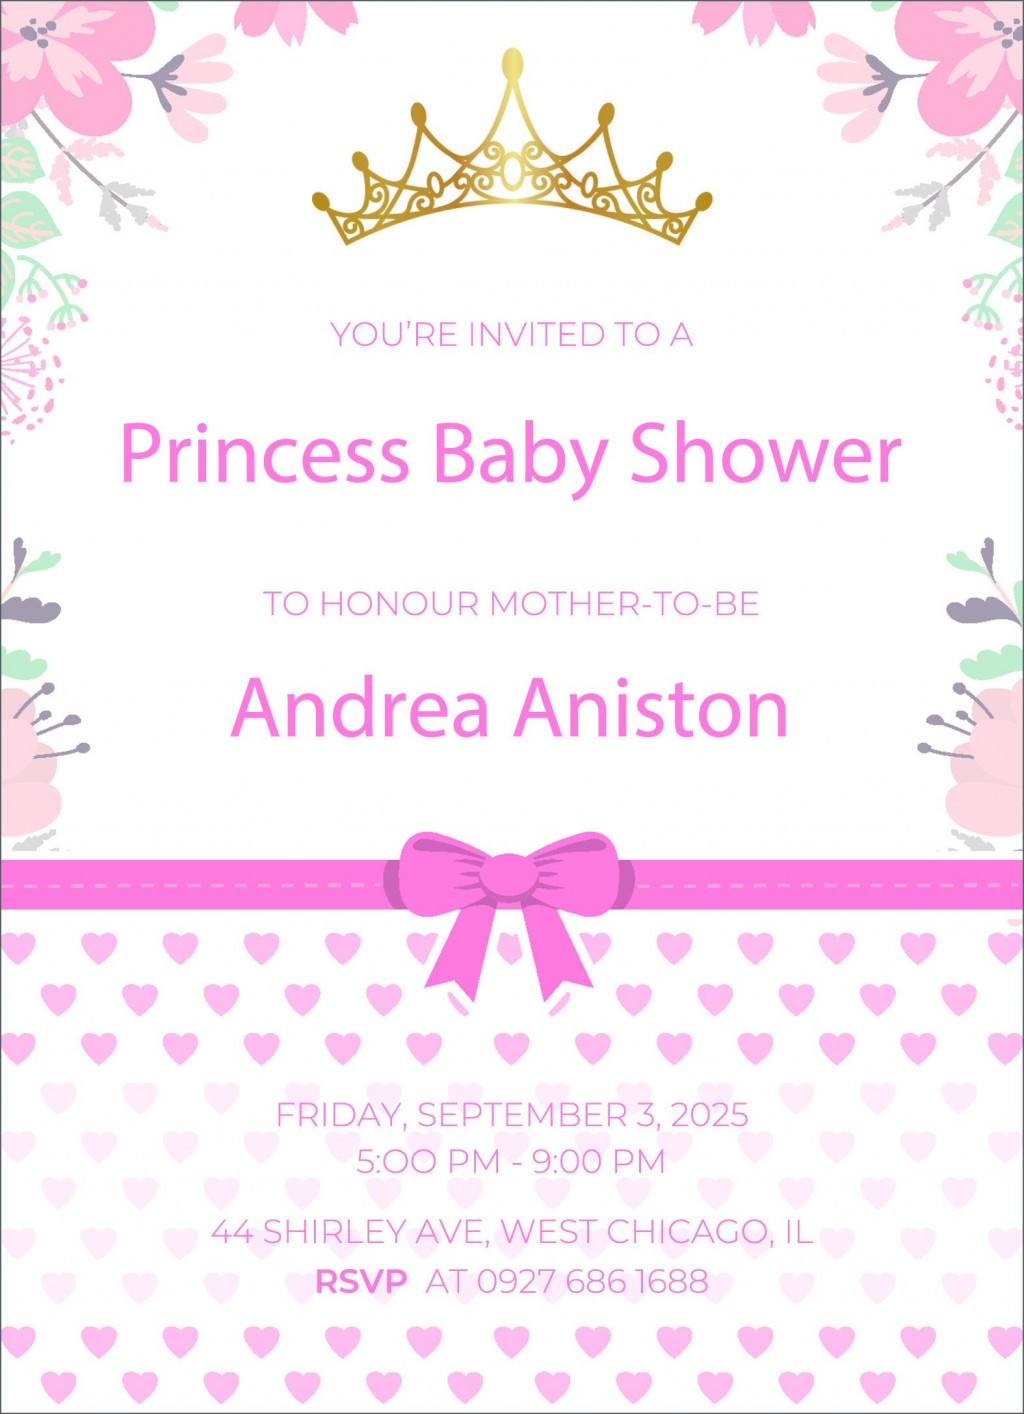 002 Impressive Free Baby Shower Invitation Template High Def  Printable Editable Microsoft Word To PrintLarge